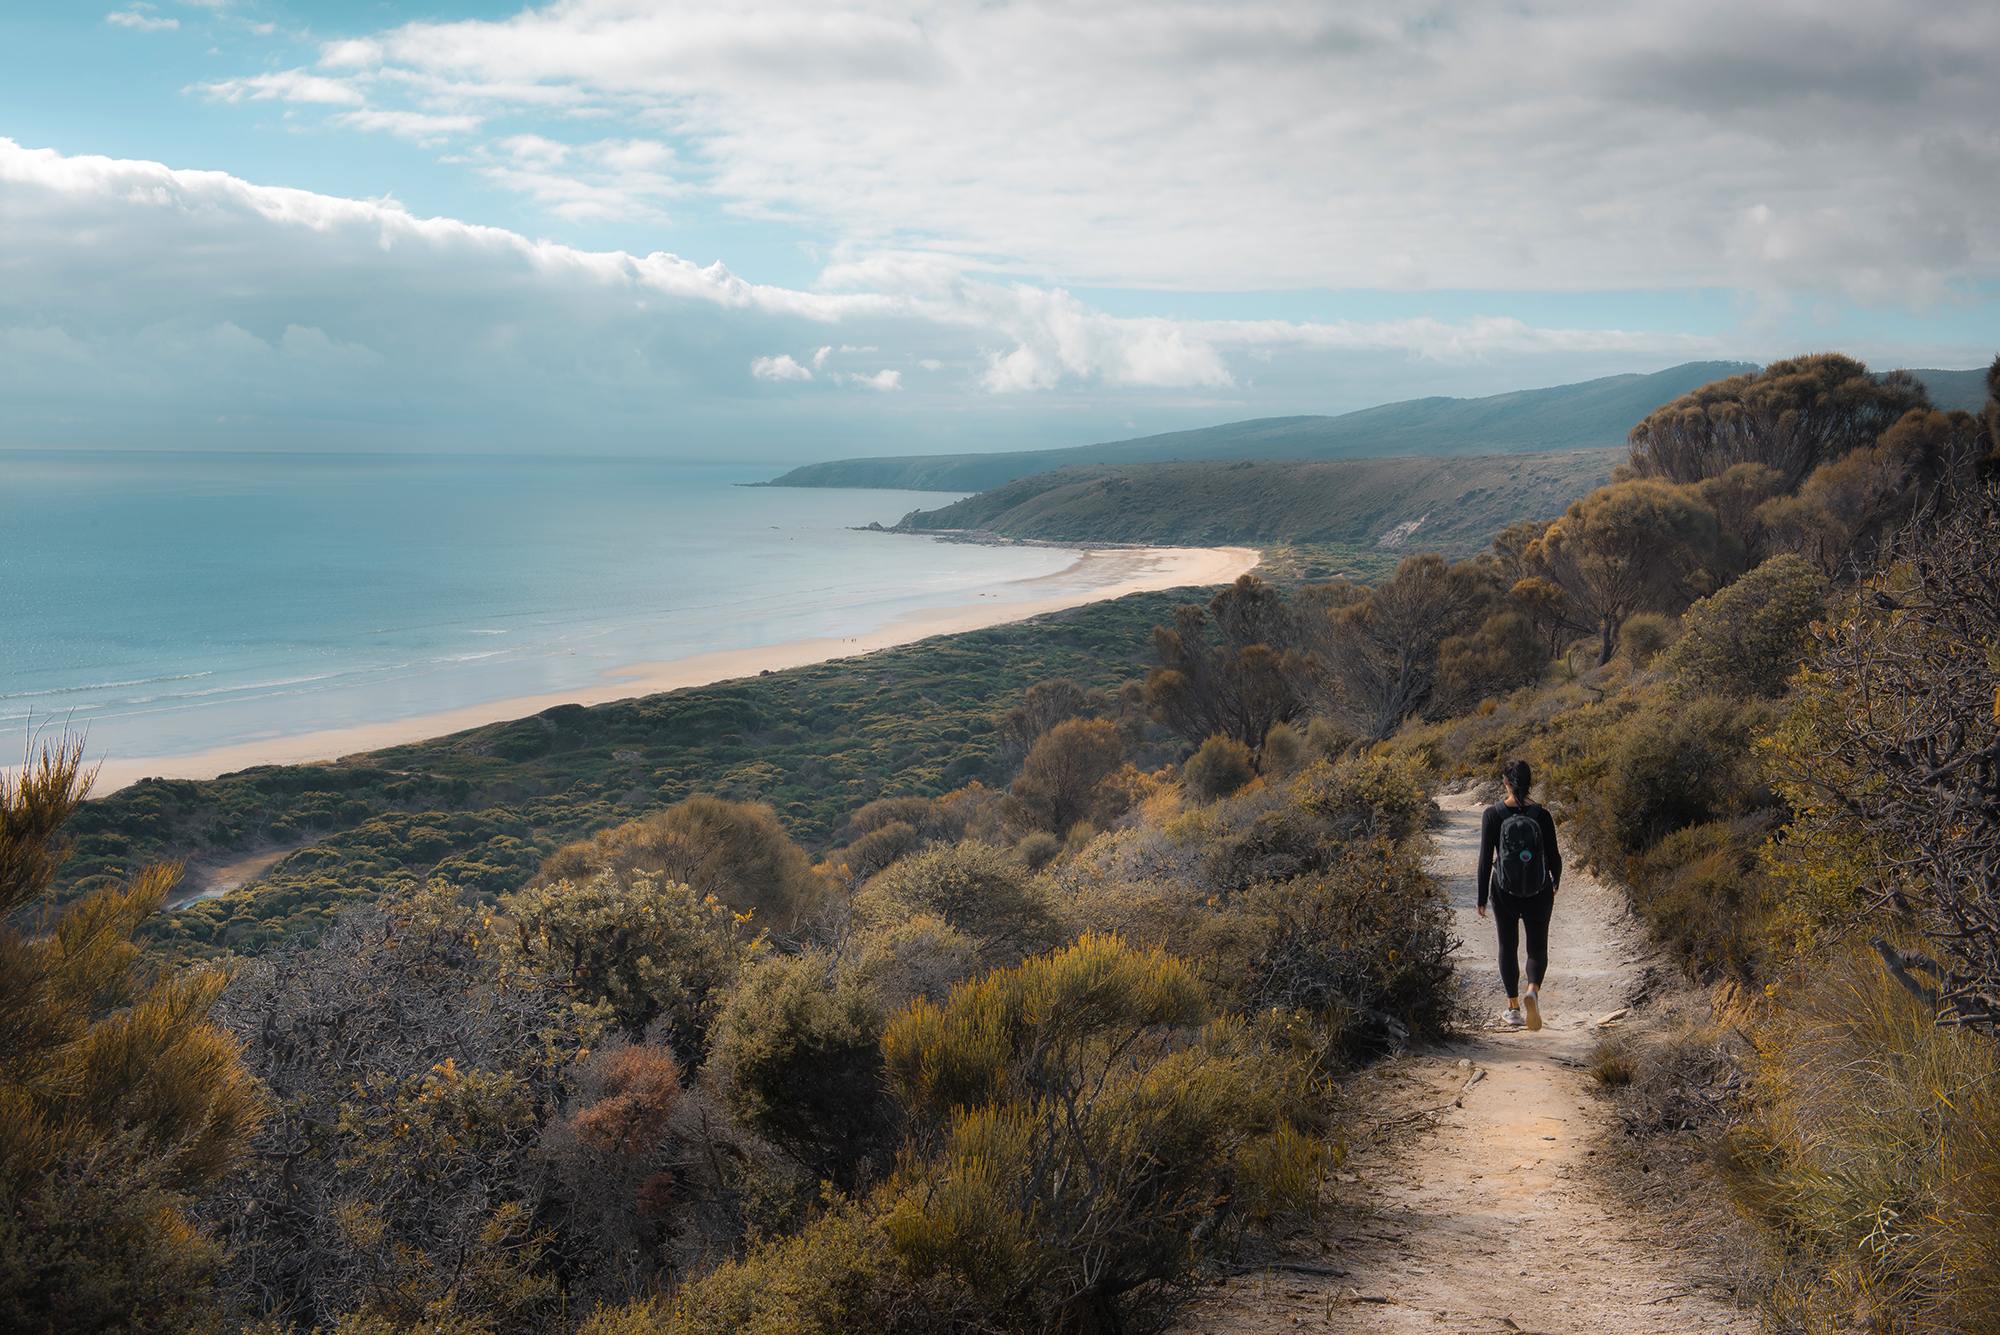 A walker on the track from Archer knob to Bakers Beach in Narawntapu National Park.